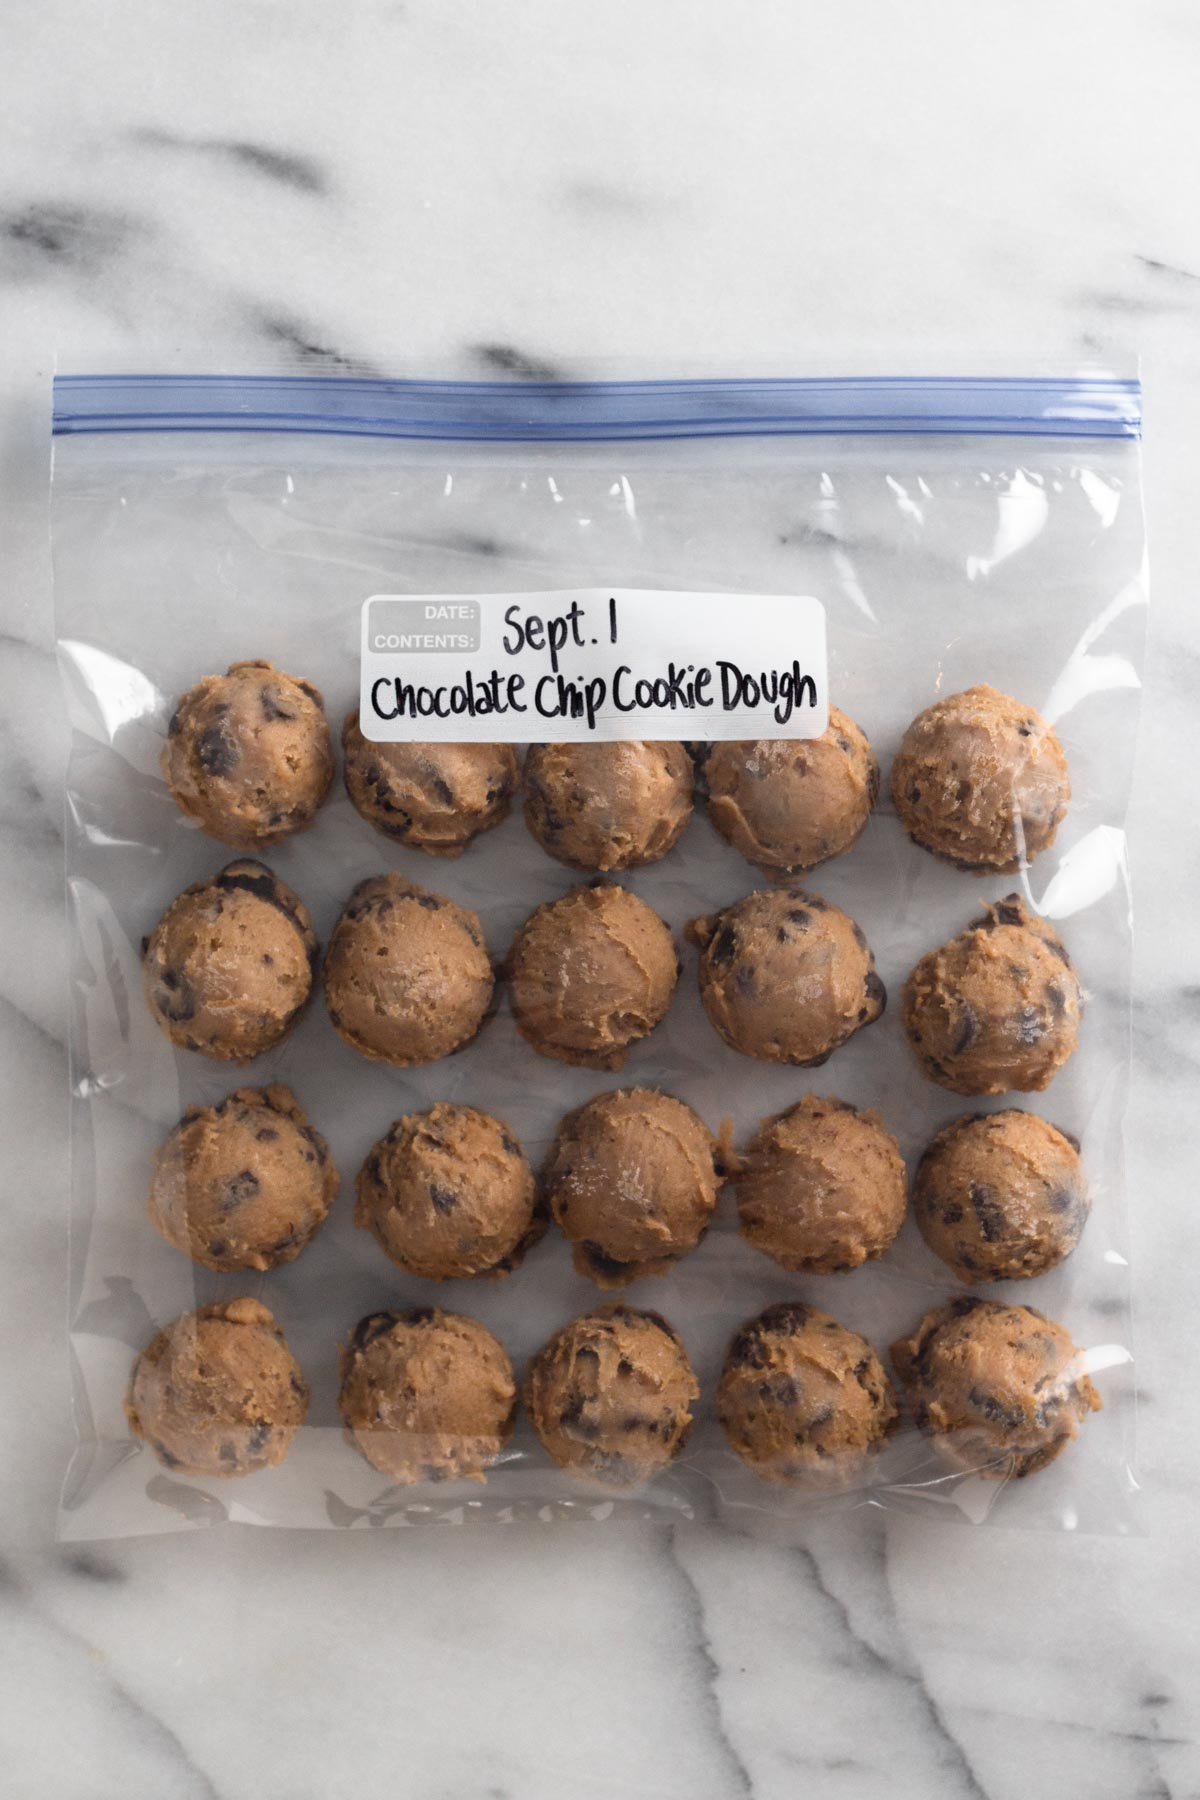 overhead view of cookie dough balls in a plastic bag